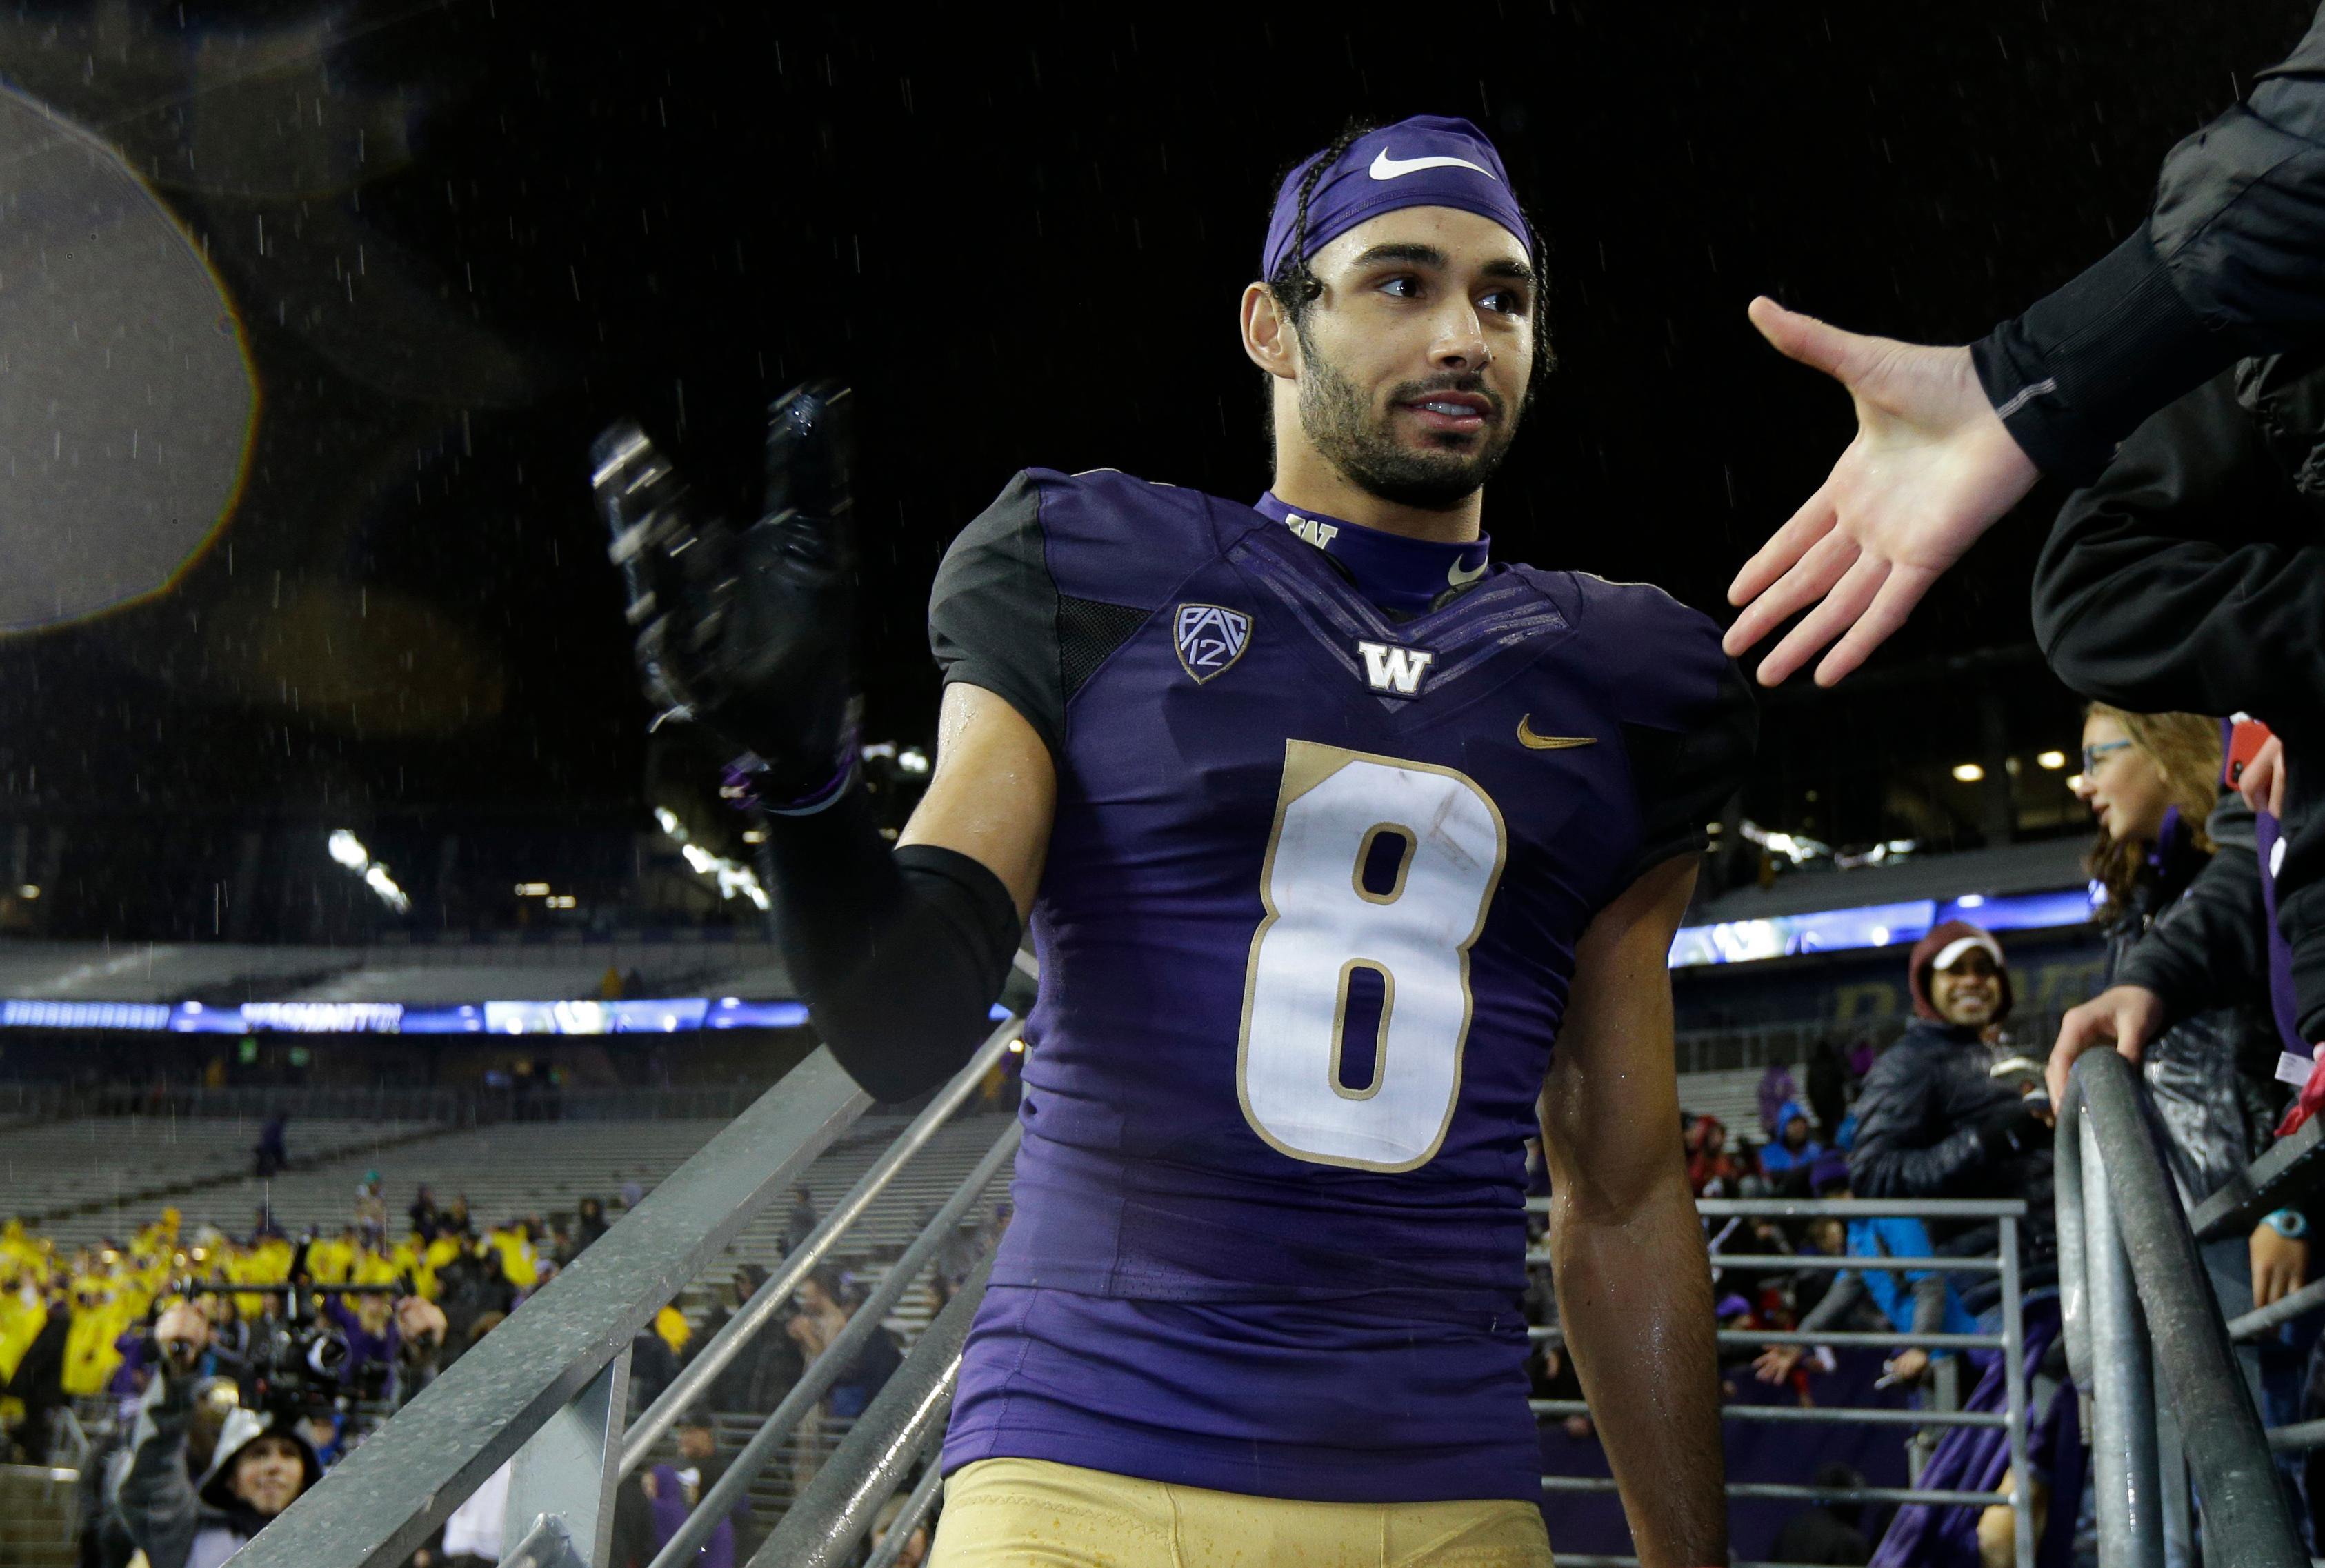 Washington wide receiver Dante Pettis greets fans after an NCAA college football game against Oregon, Saturday, Nov. 4, 2017, in Seattle. Pettis set a new NCAA record for punt-return touchdowns when he scored in the second quarter and Washington won 38-3. (AP Photo/Ted S. Warren)